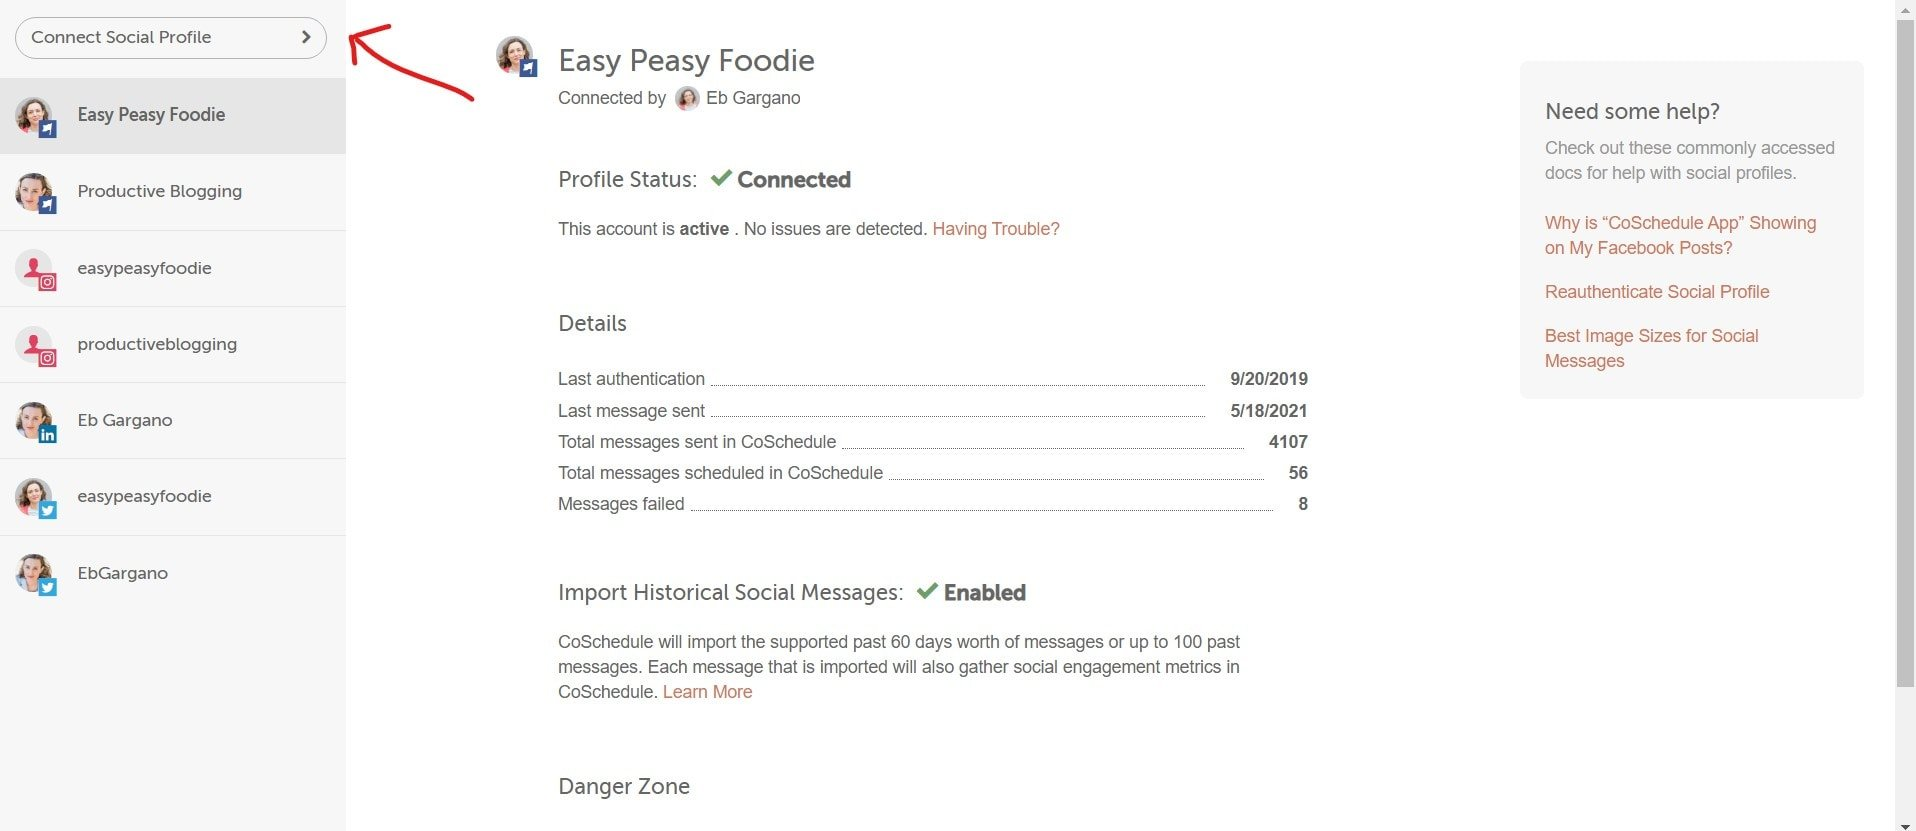 Screengrab showing how to connect social profiles in CoSchedule